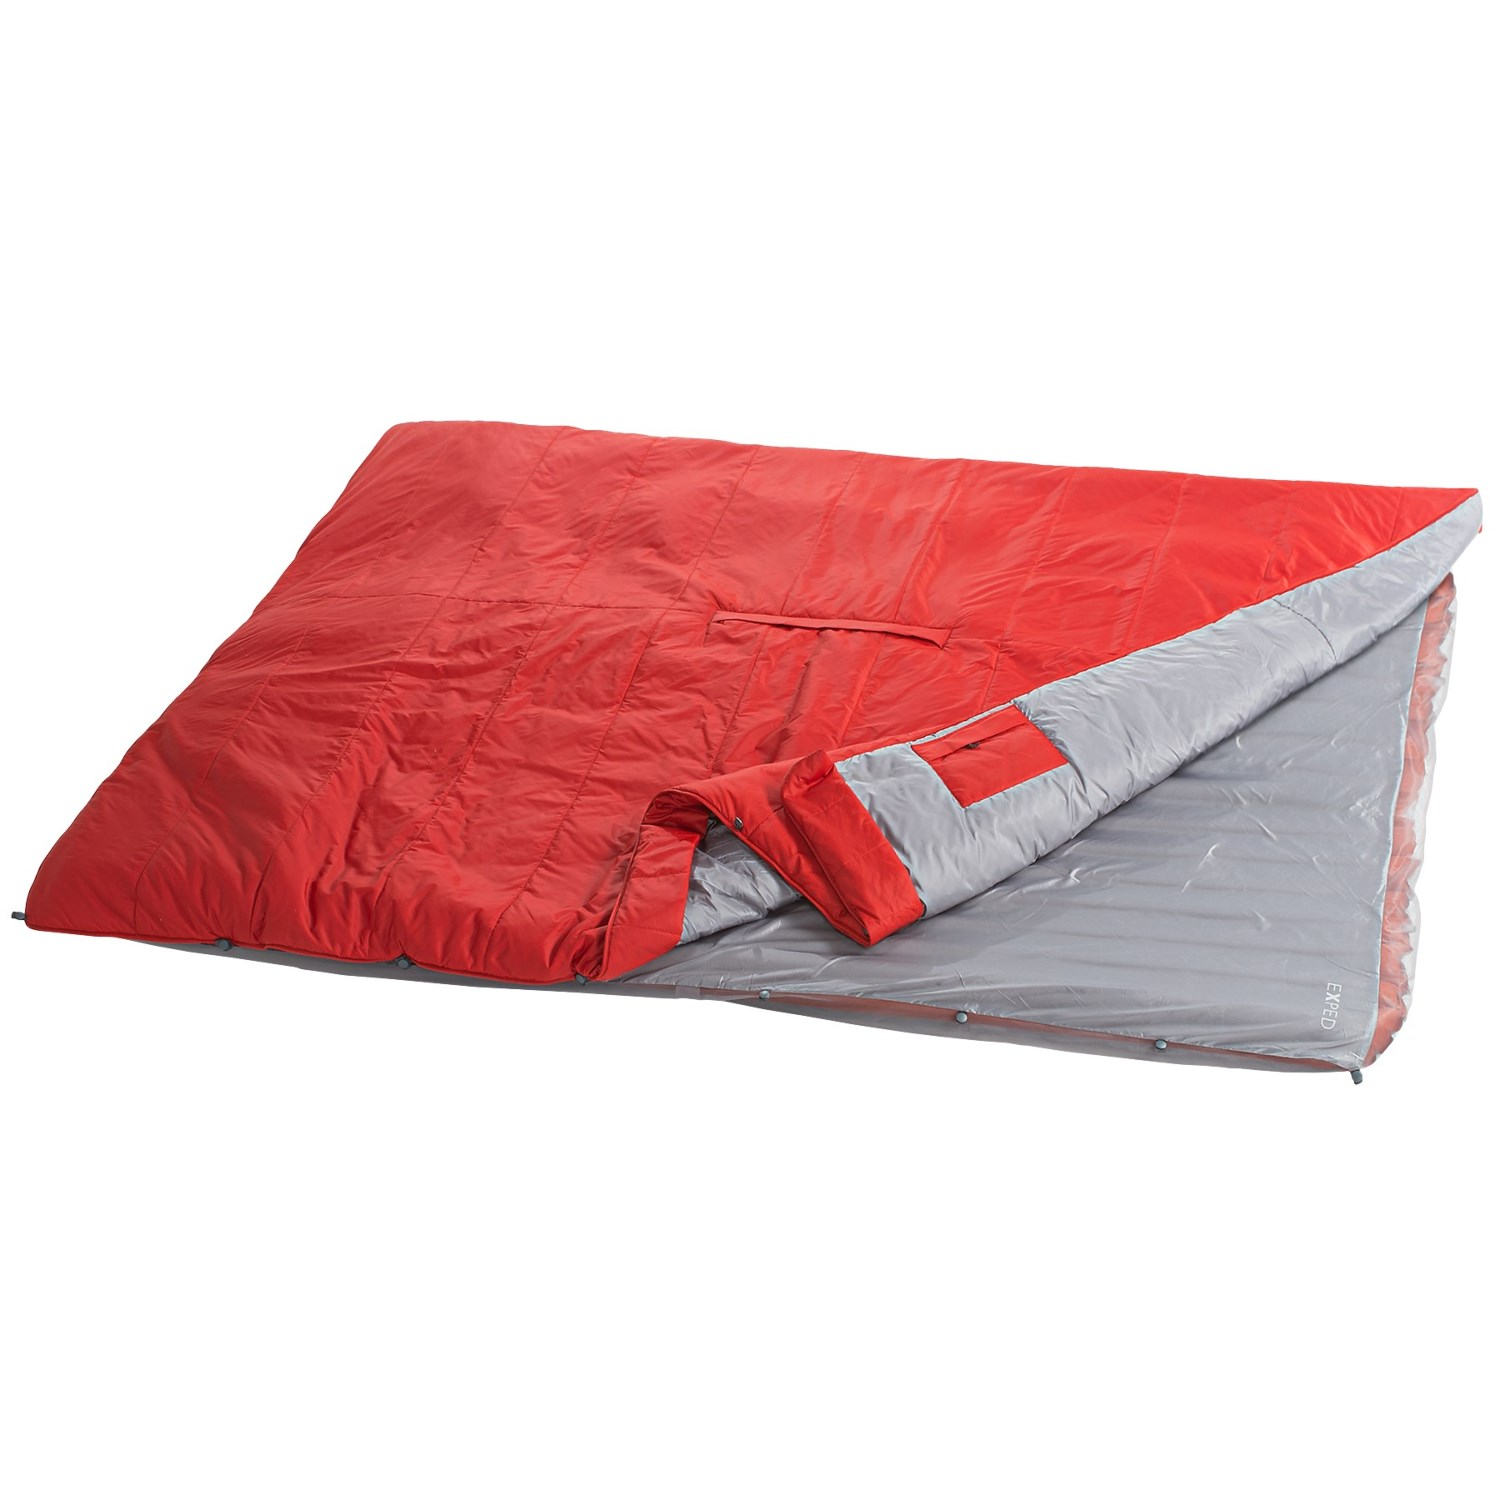 Exped Synmat Lite 5 L Air Mattress Long Insulated